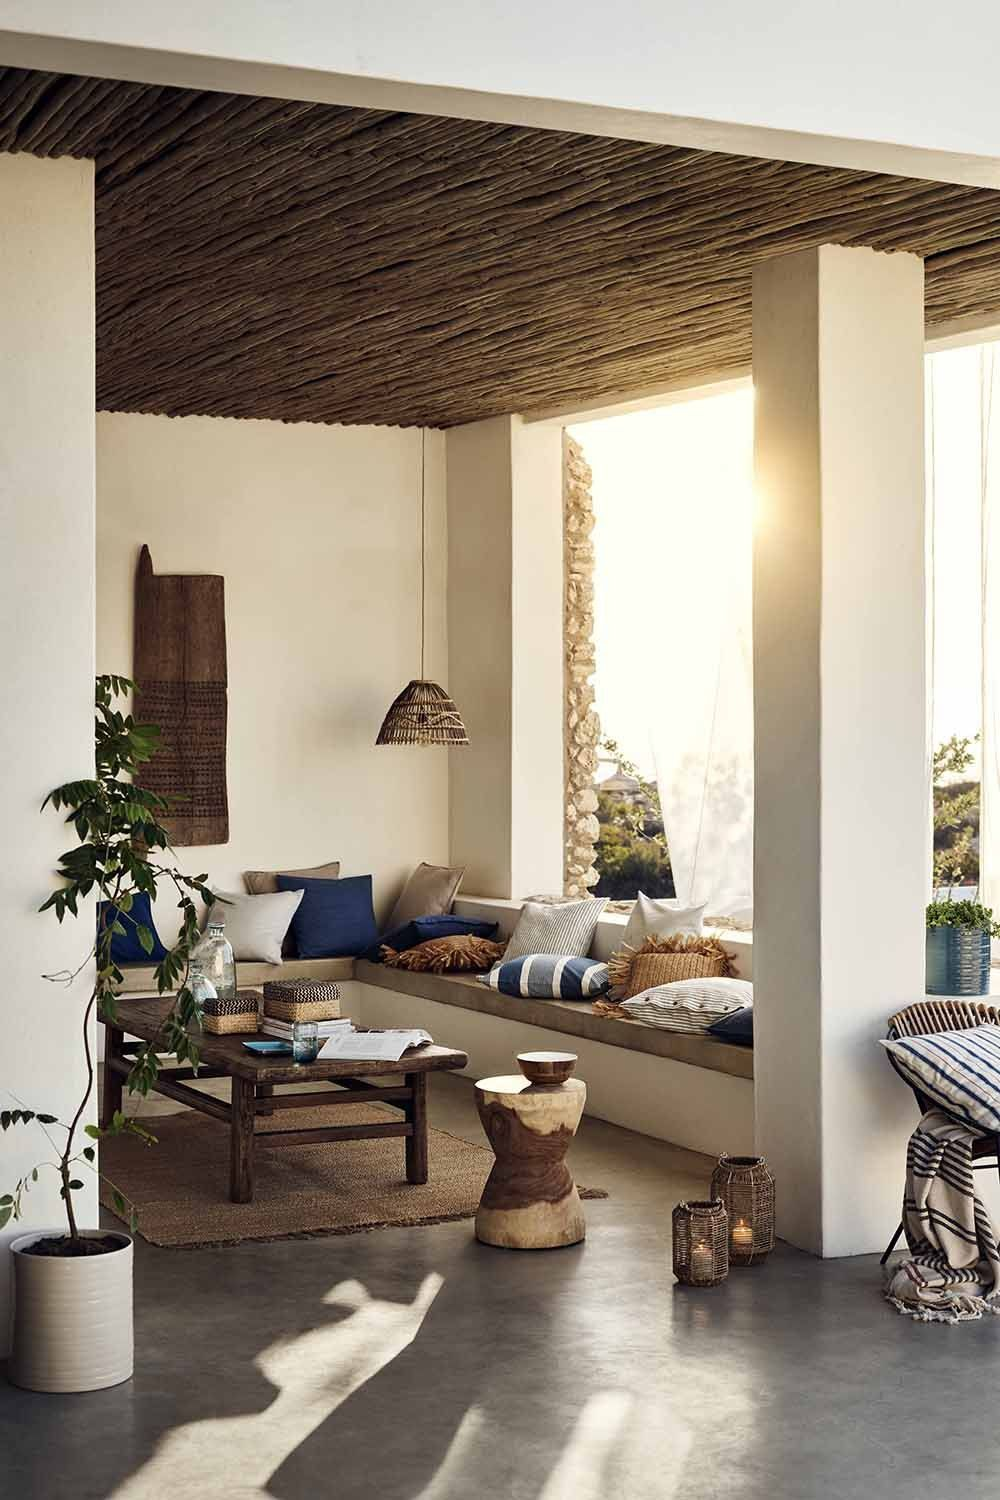 coussin dehors coussin outdoor H&M Home   Dehors / Outdoor   Pinterest   Coins  coussin dehors